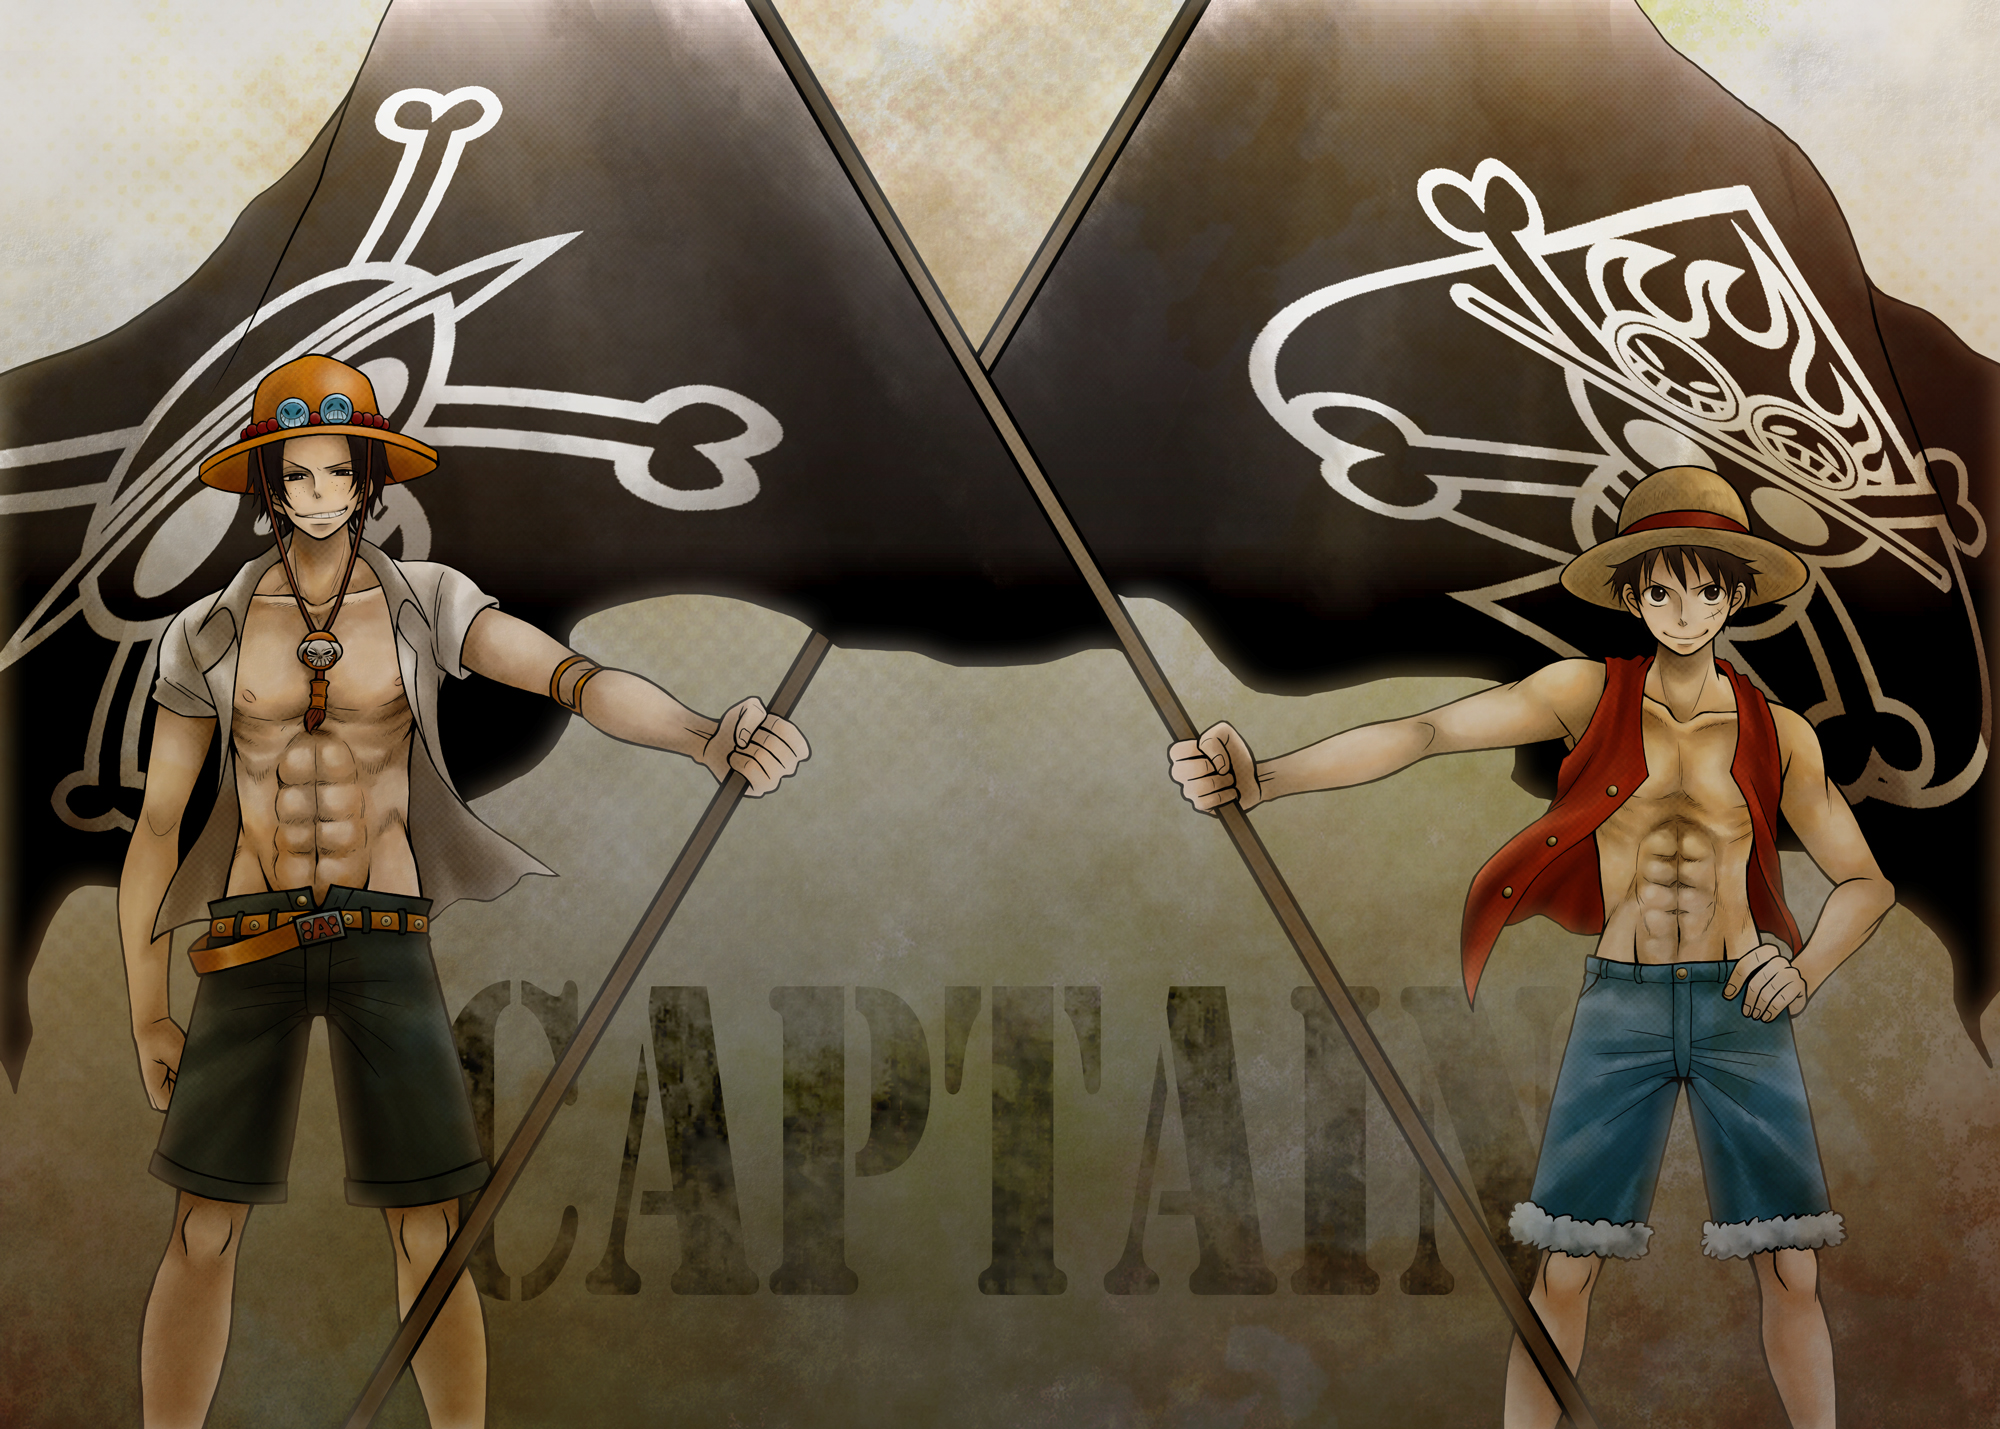 one piece Luffy monkey HD manga anime widescreen desktop wallpapers free download